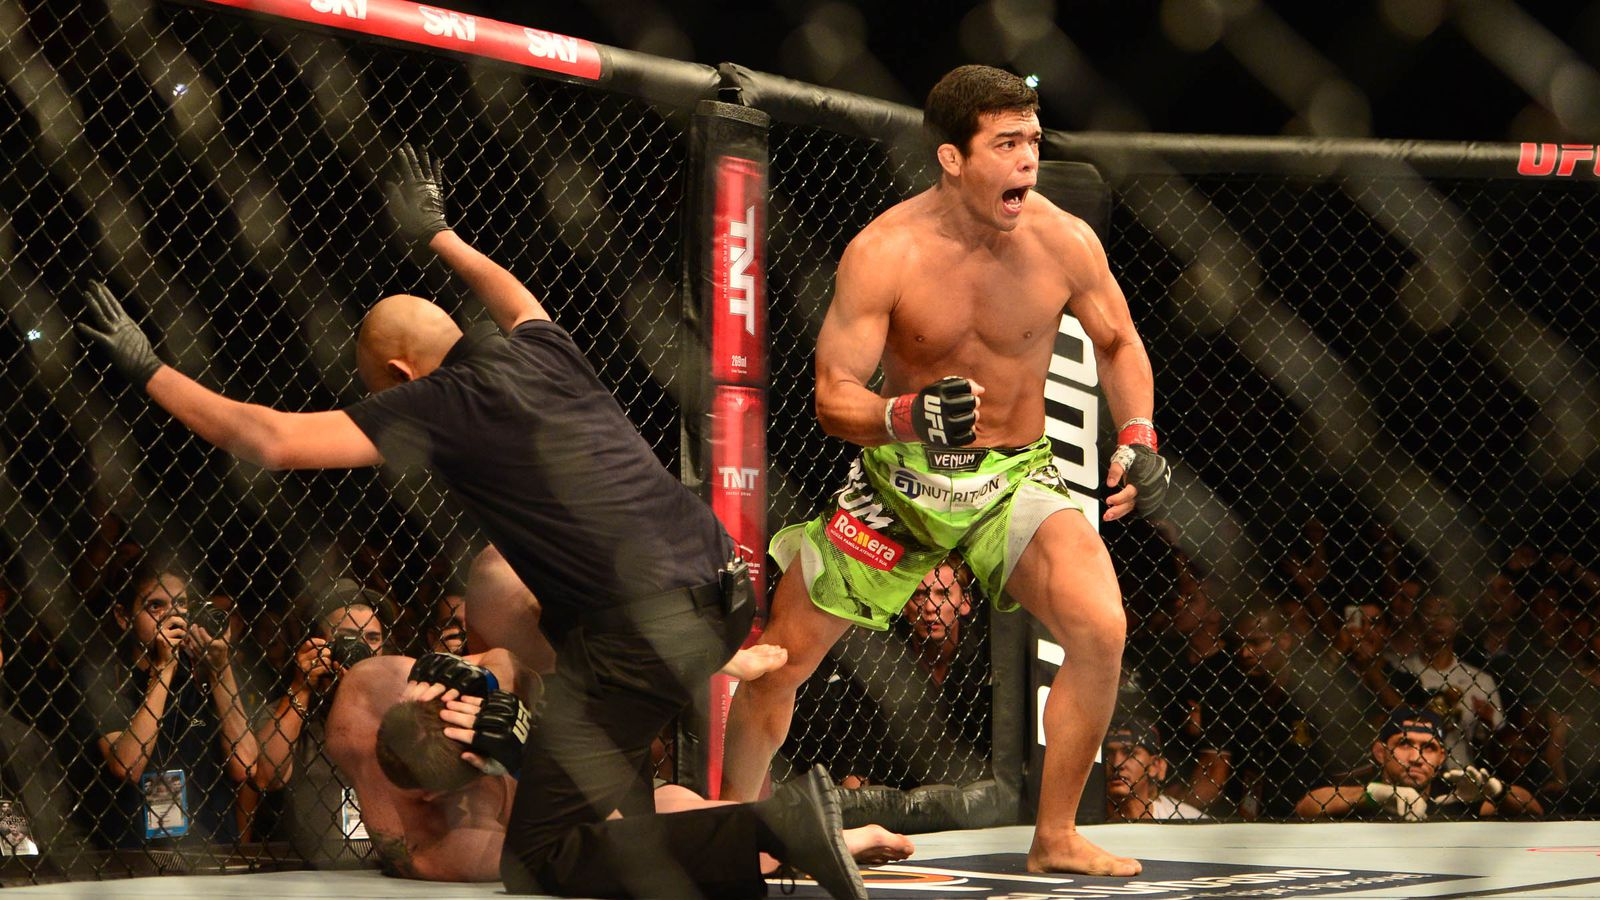 Fortunes Changed for Five at UFC Fight Night 58